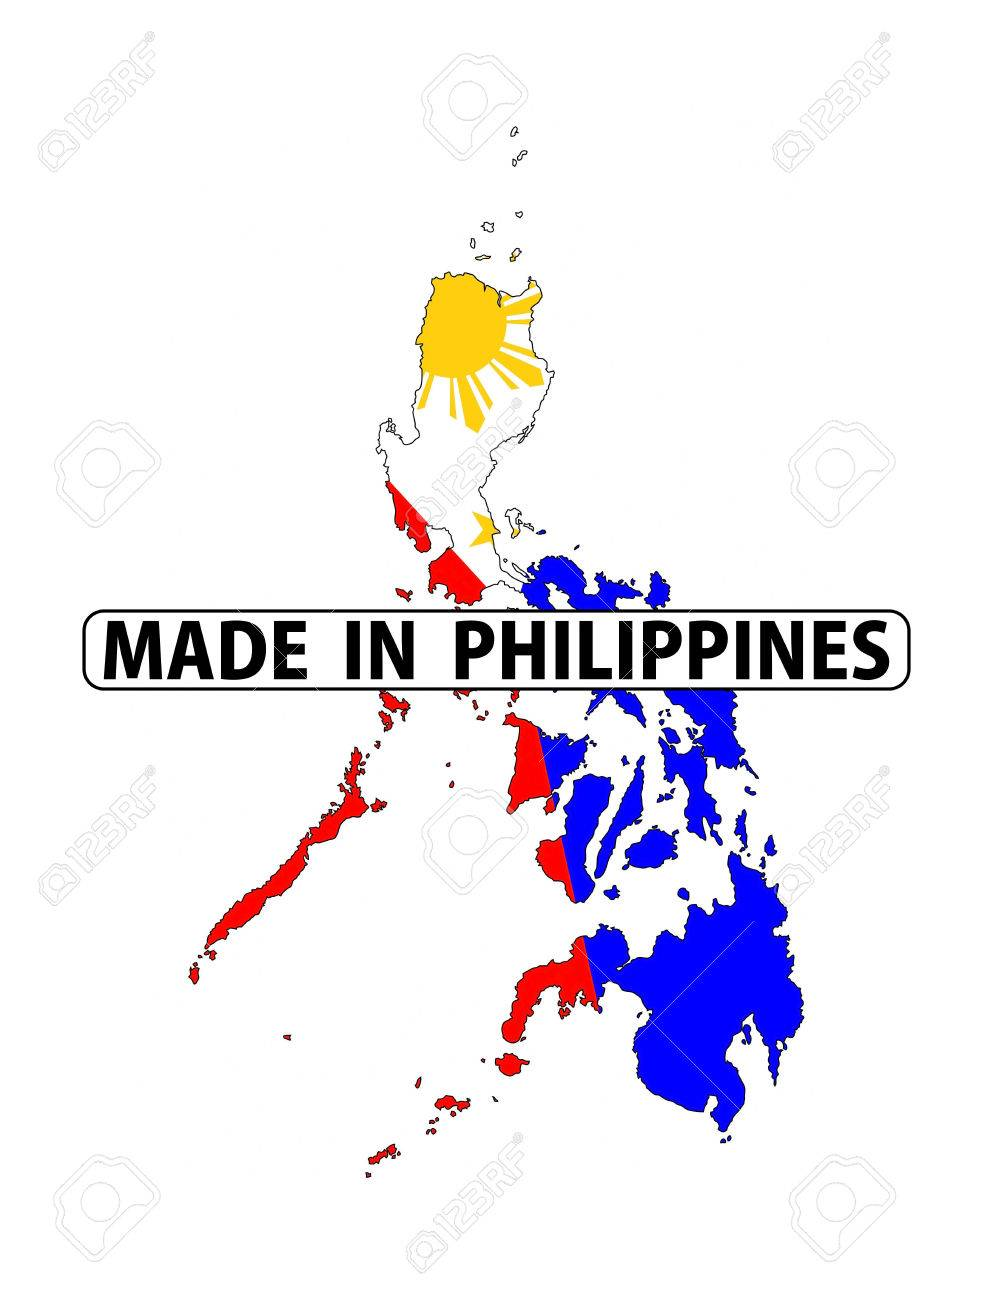 Made In Philippines Country National Flag Map Shape With Text Stock Philippine Country Map on philippines country information, philippines world map, philippines campaign map, philippines islands, philippines on map, philippines road map, philippines country outline, philippines ocean map, philippines physical features map, philippines country profile, philippines street map, philippines country code, philippines new zealand map, philippines country flag, philippines political map, philippines language map, philippines beaches, san jose antique philippines map, philippines division map, philippines landform map,